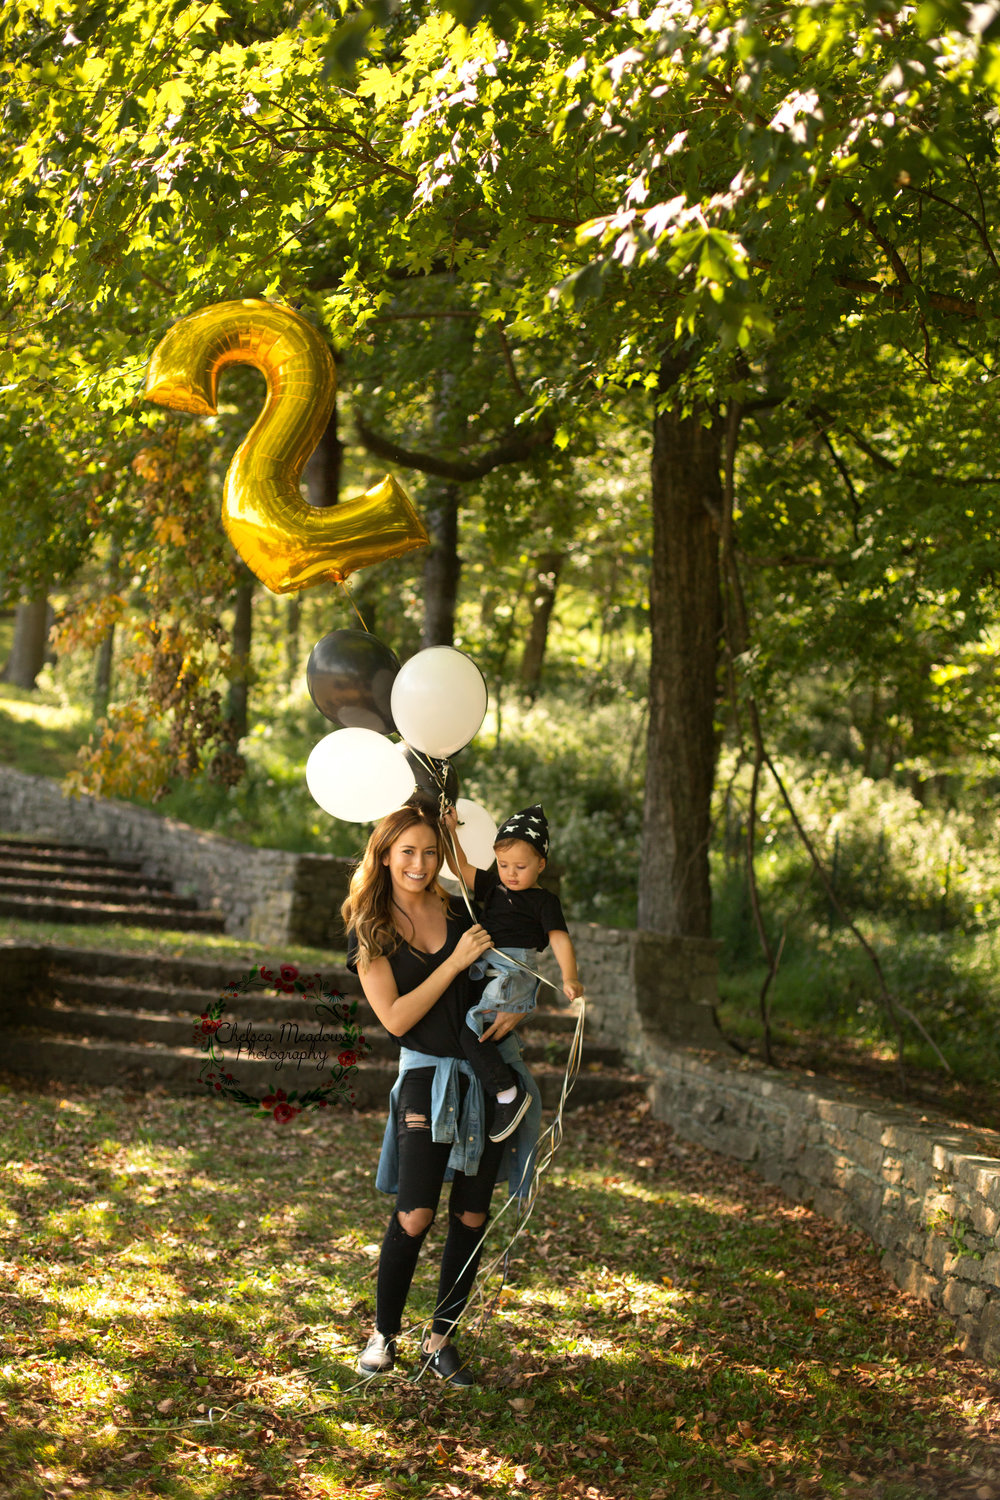 Ryder 2nd Birthday - Nashville Family Newborn Photographer - Chelsea Meadows Photography (48).jpg